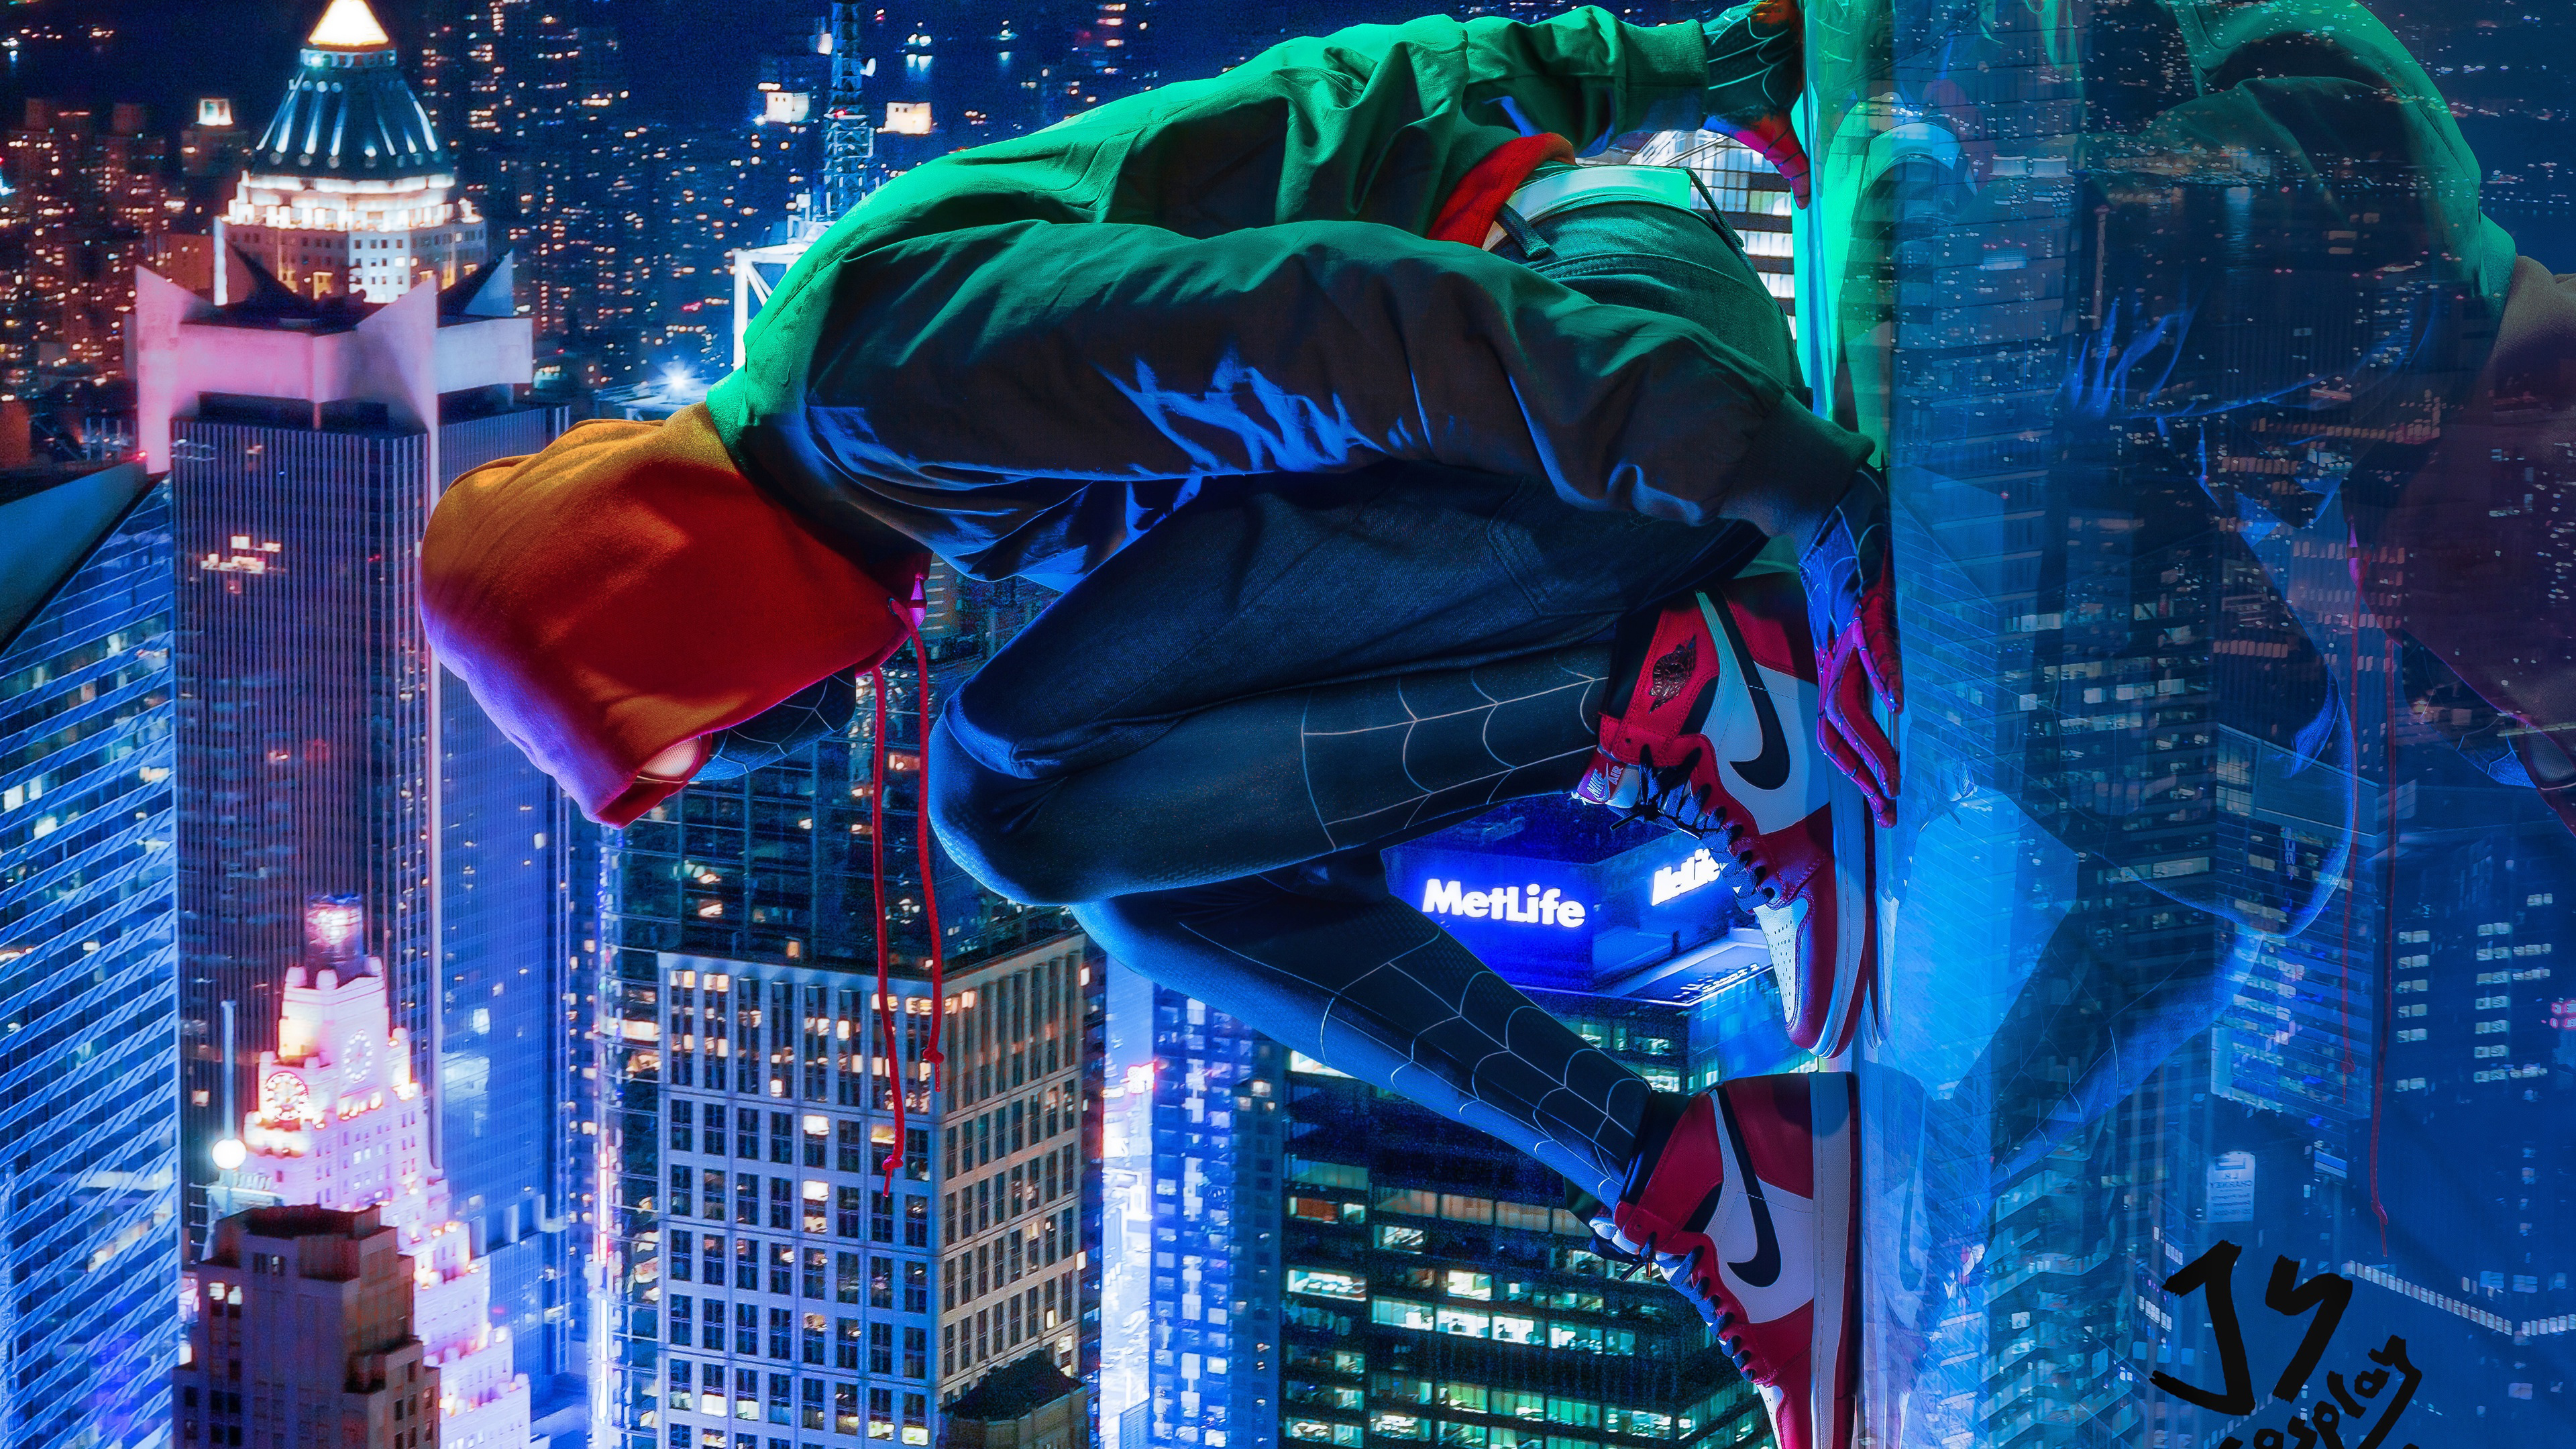 miles morales spiderman cosplay 4k 1544923180 - Miles Morales Spiderman Cosplay 4k - superheroes wallpapers, spiderman into the spider verse wallpapers, hd-wallpapers, digital art wallpapers, cosplay wallpapers, behance wallpapers, artwork wallpapers, artist wallpapers, 4k-wallpapers